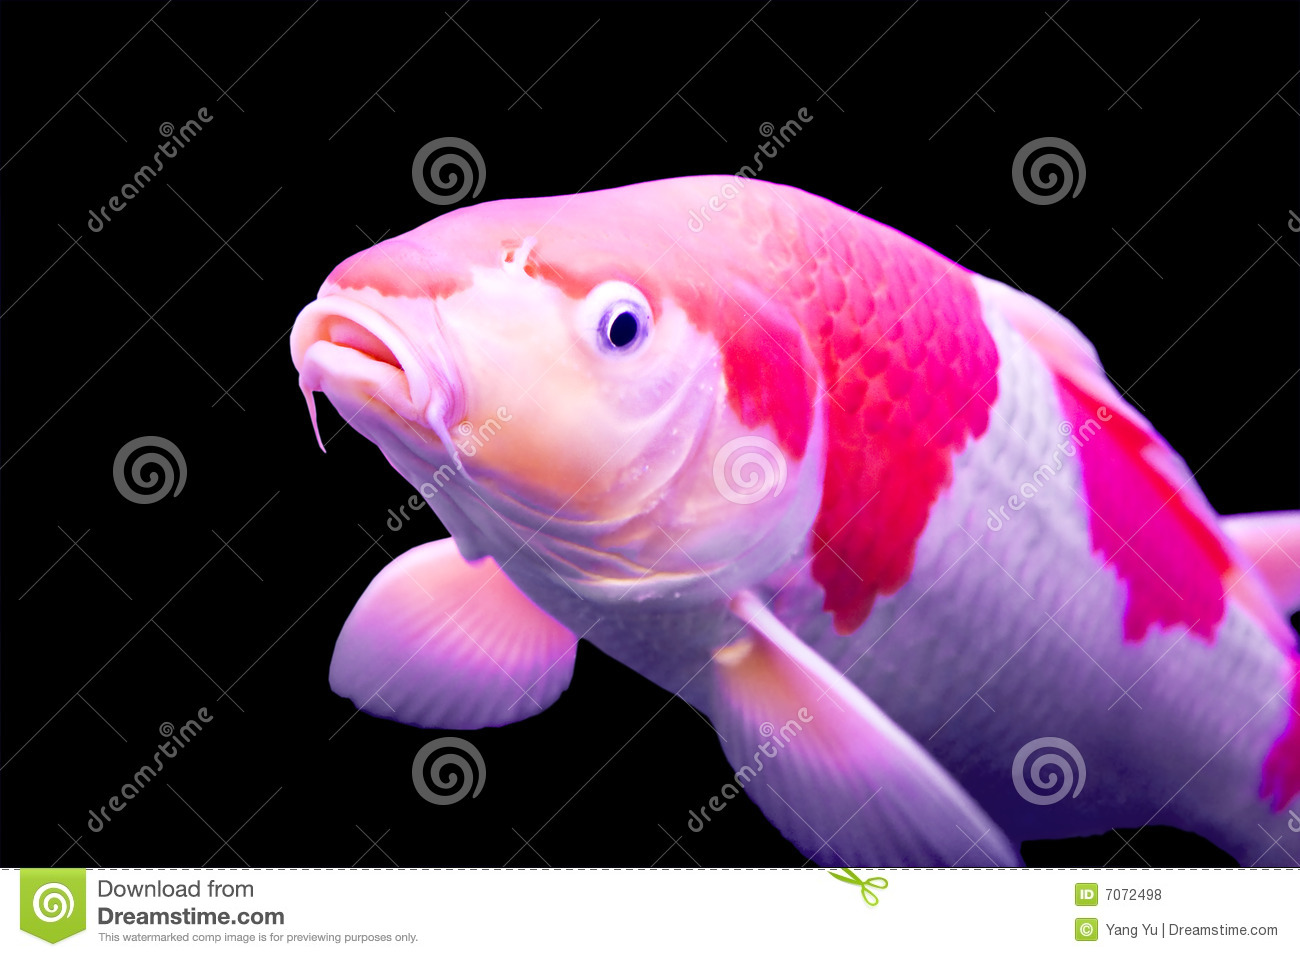 Big colorful koi carp royalty free stock photos image for Fish dream meaning pregnancy